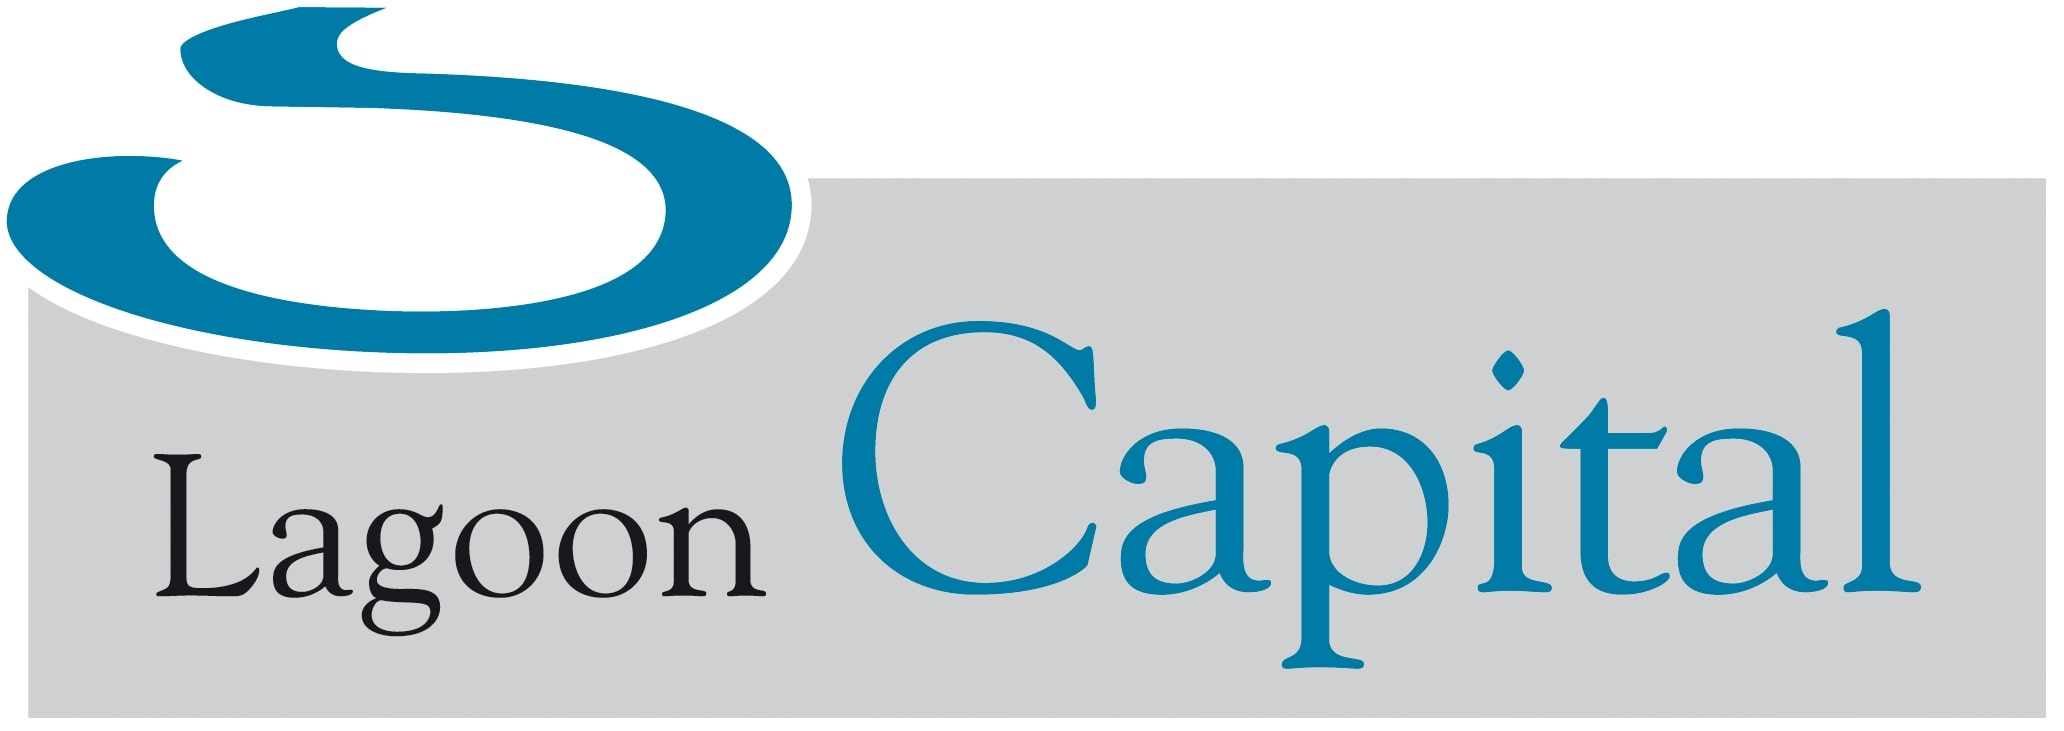 Lagoon Capital